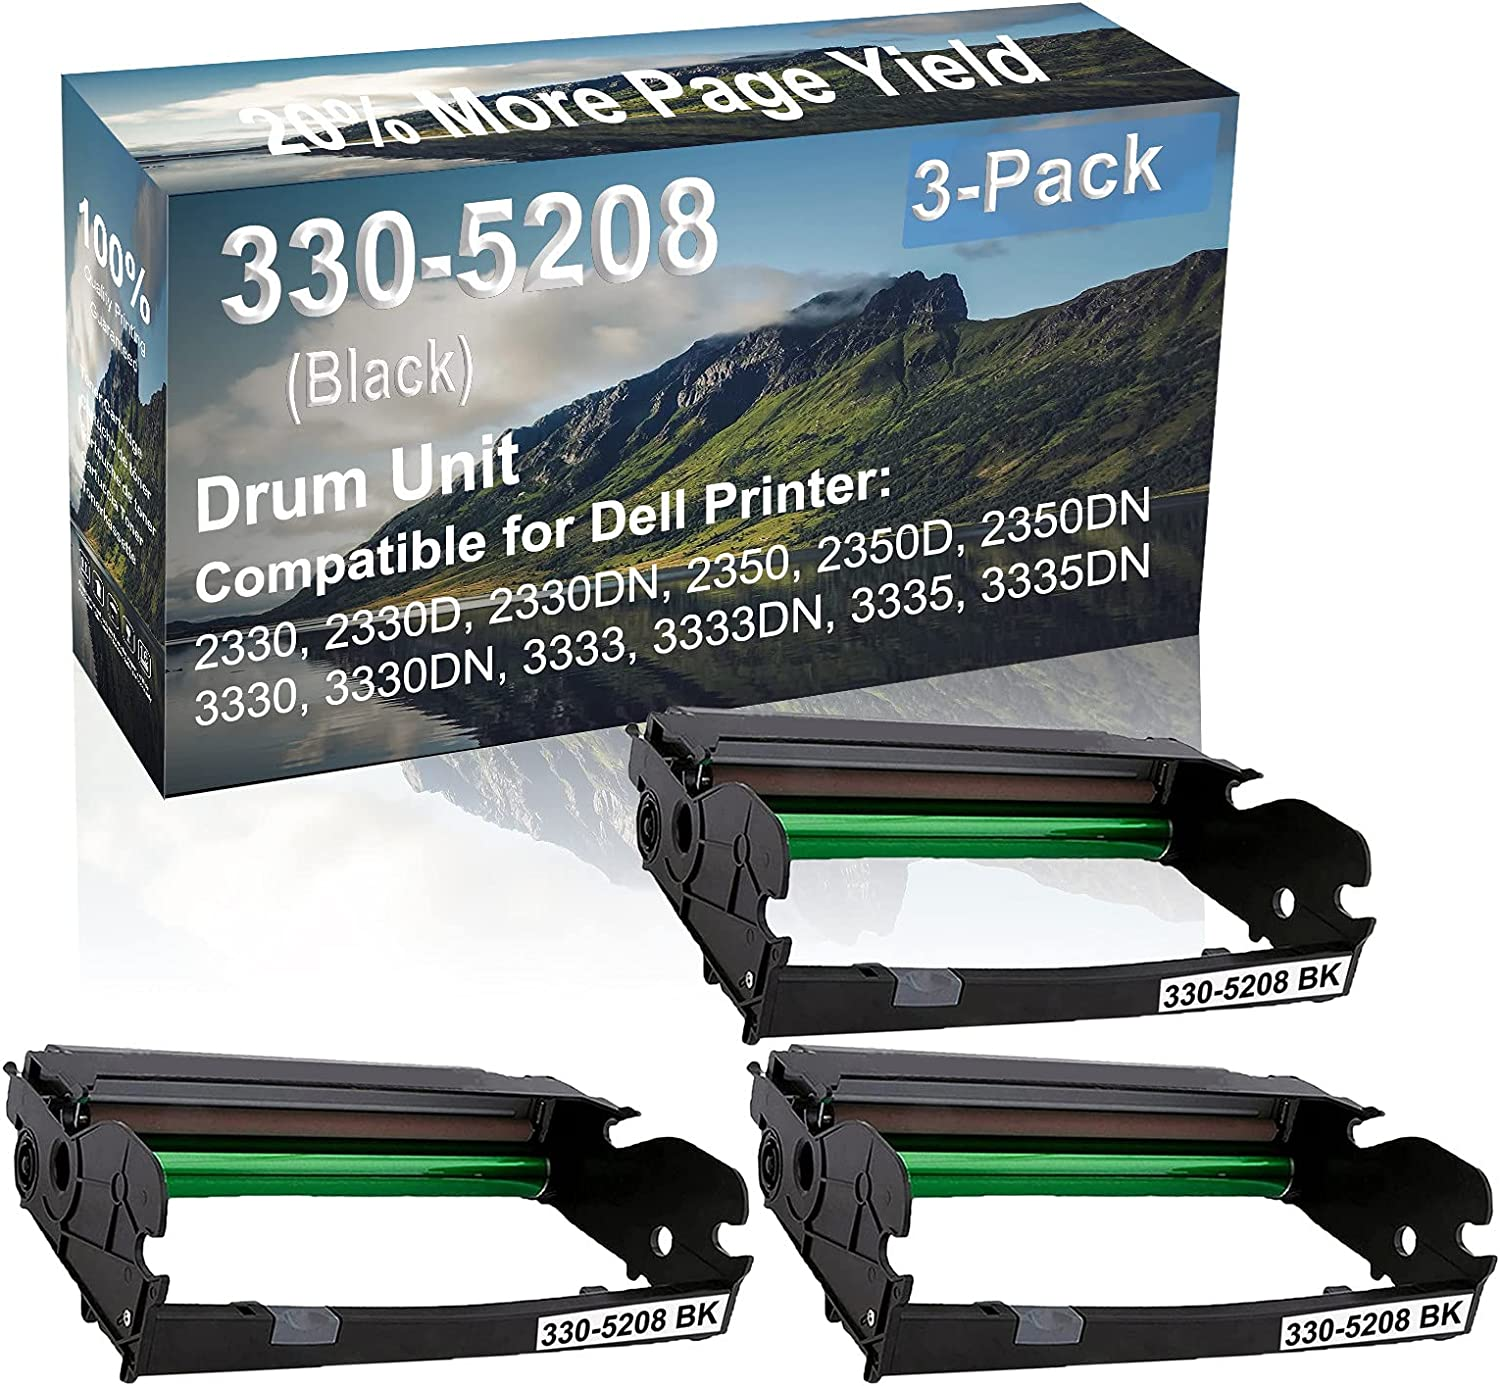 3-Pack Compatible Drum Unit (Black) Replacement for Dell 330-5208 Drum Kit use for Dell 3333, 3333DN, 3335, 3335DN Printer